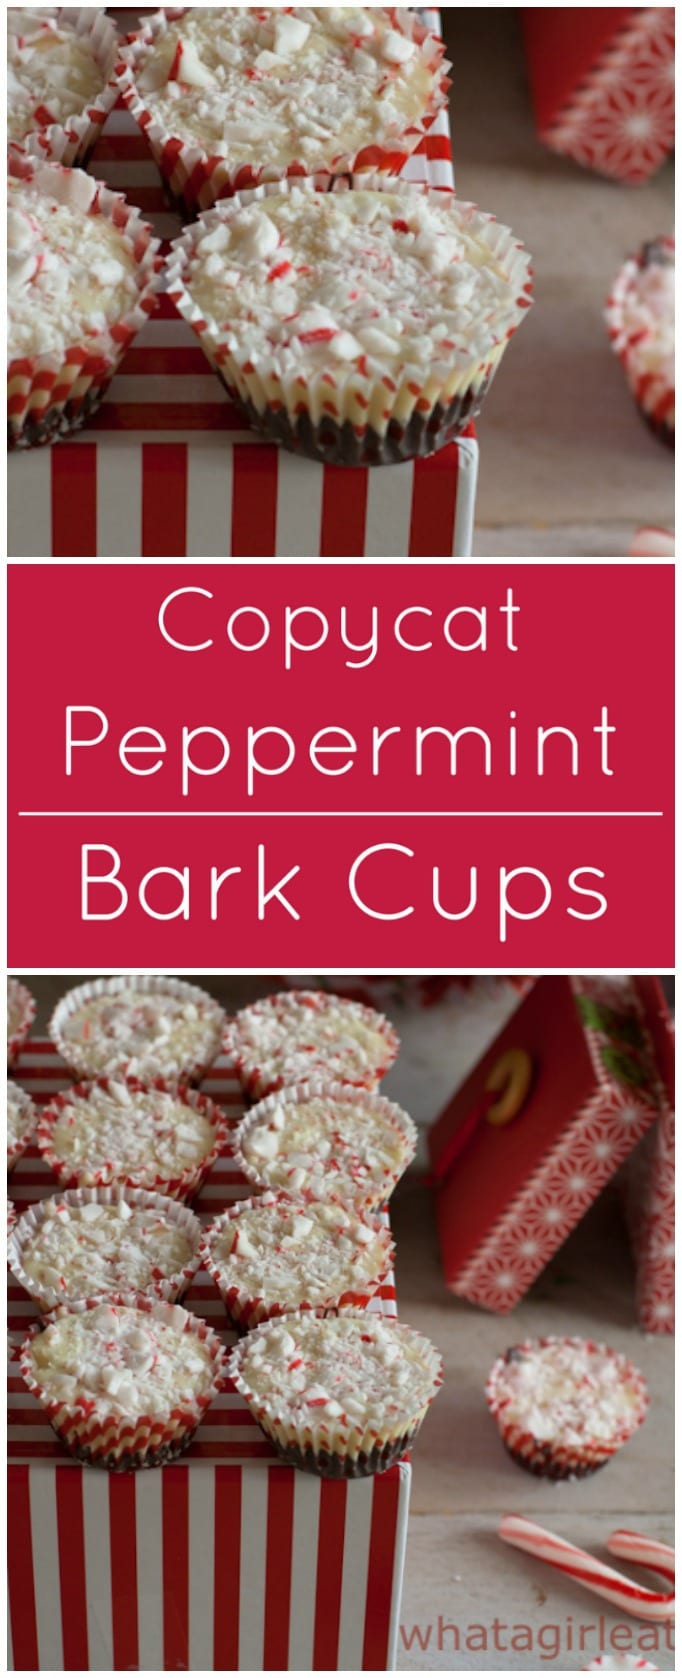 Easy to make copycat Peppermint Bark Cups look and taste just like the ones in those glossy catalogs at a fraction of the price!